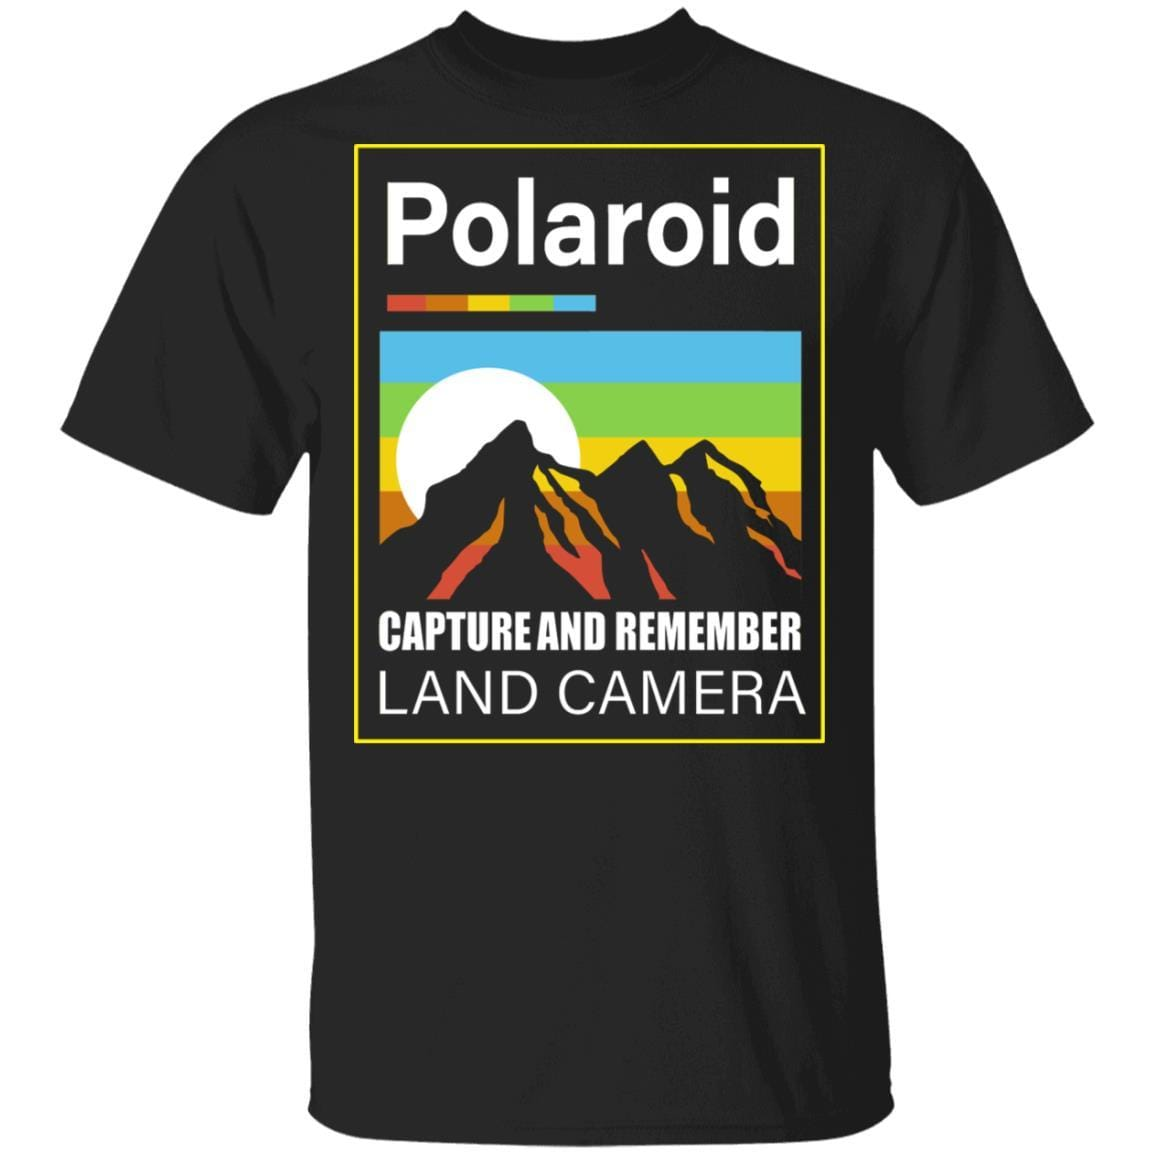 Polaroid Capture And Remember Land Camera T-Shirts, Hoodies 1049-9953-93031543-48144 - Tee Ript